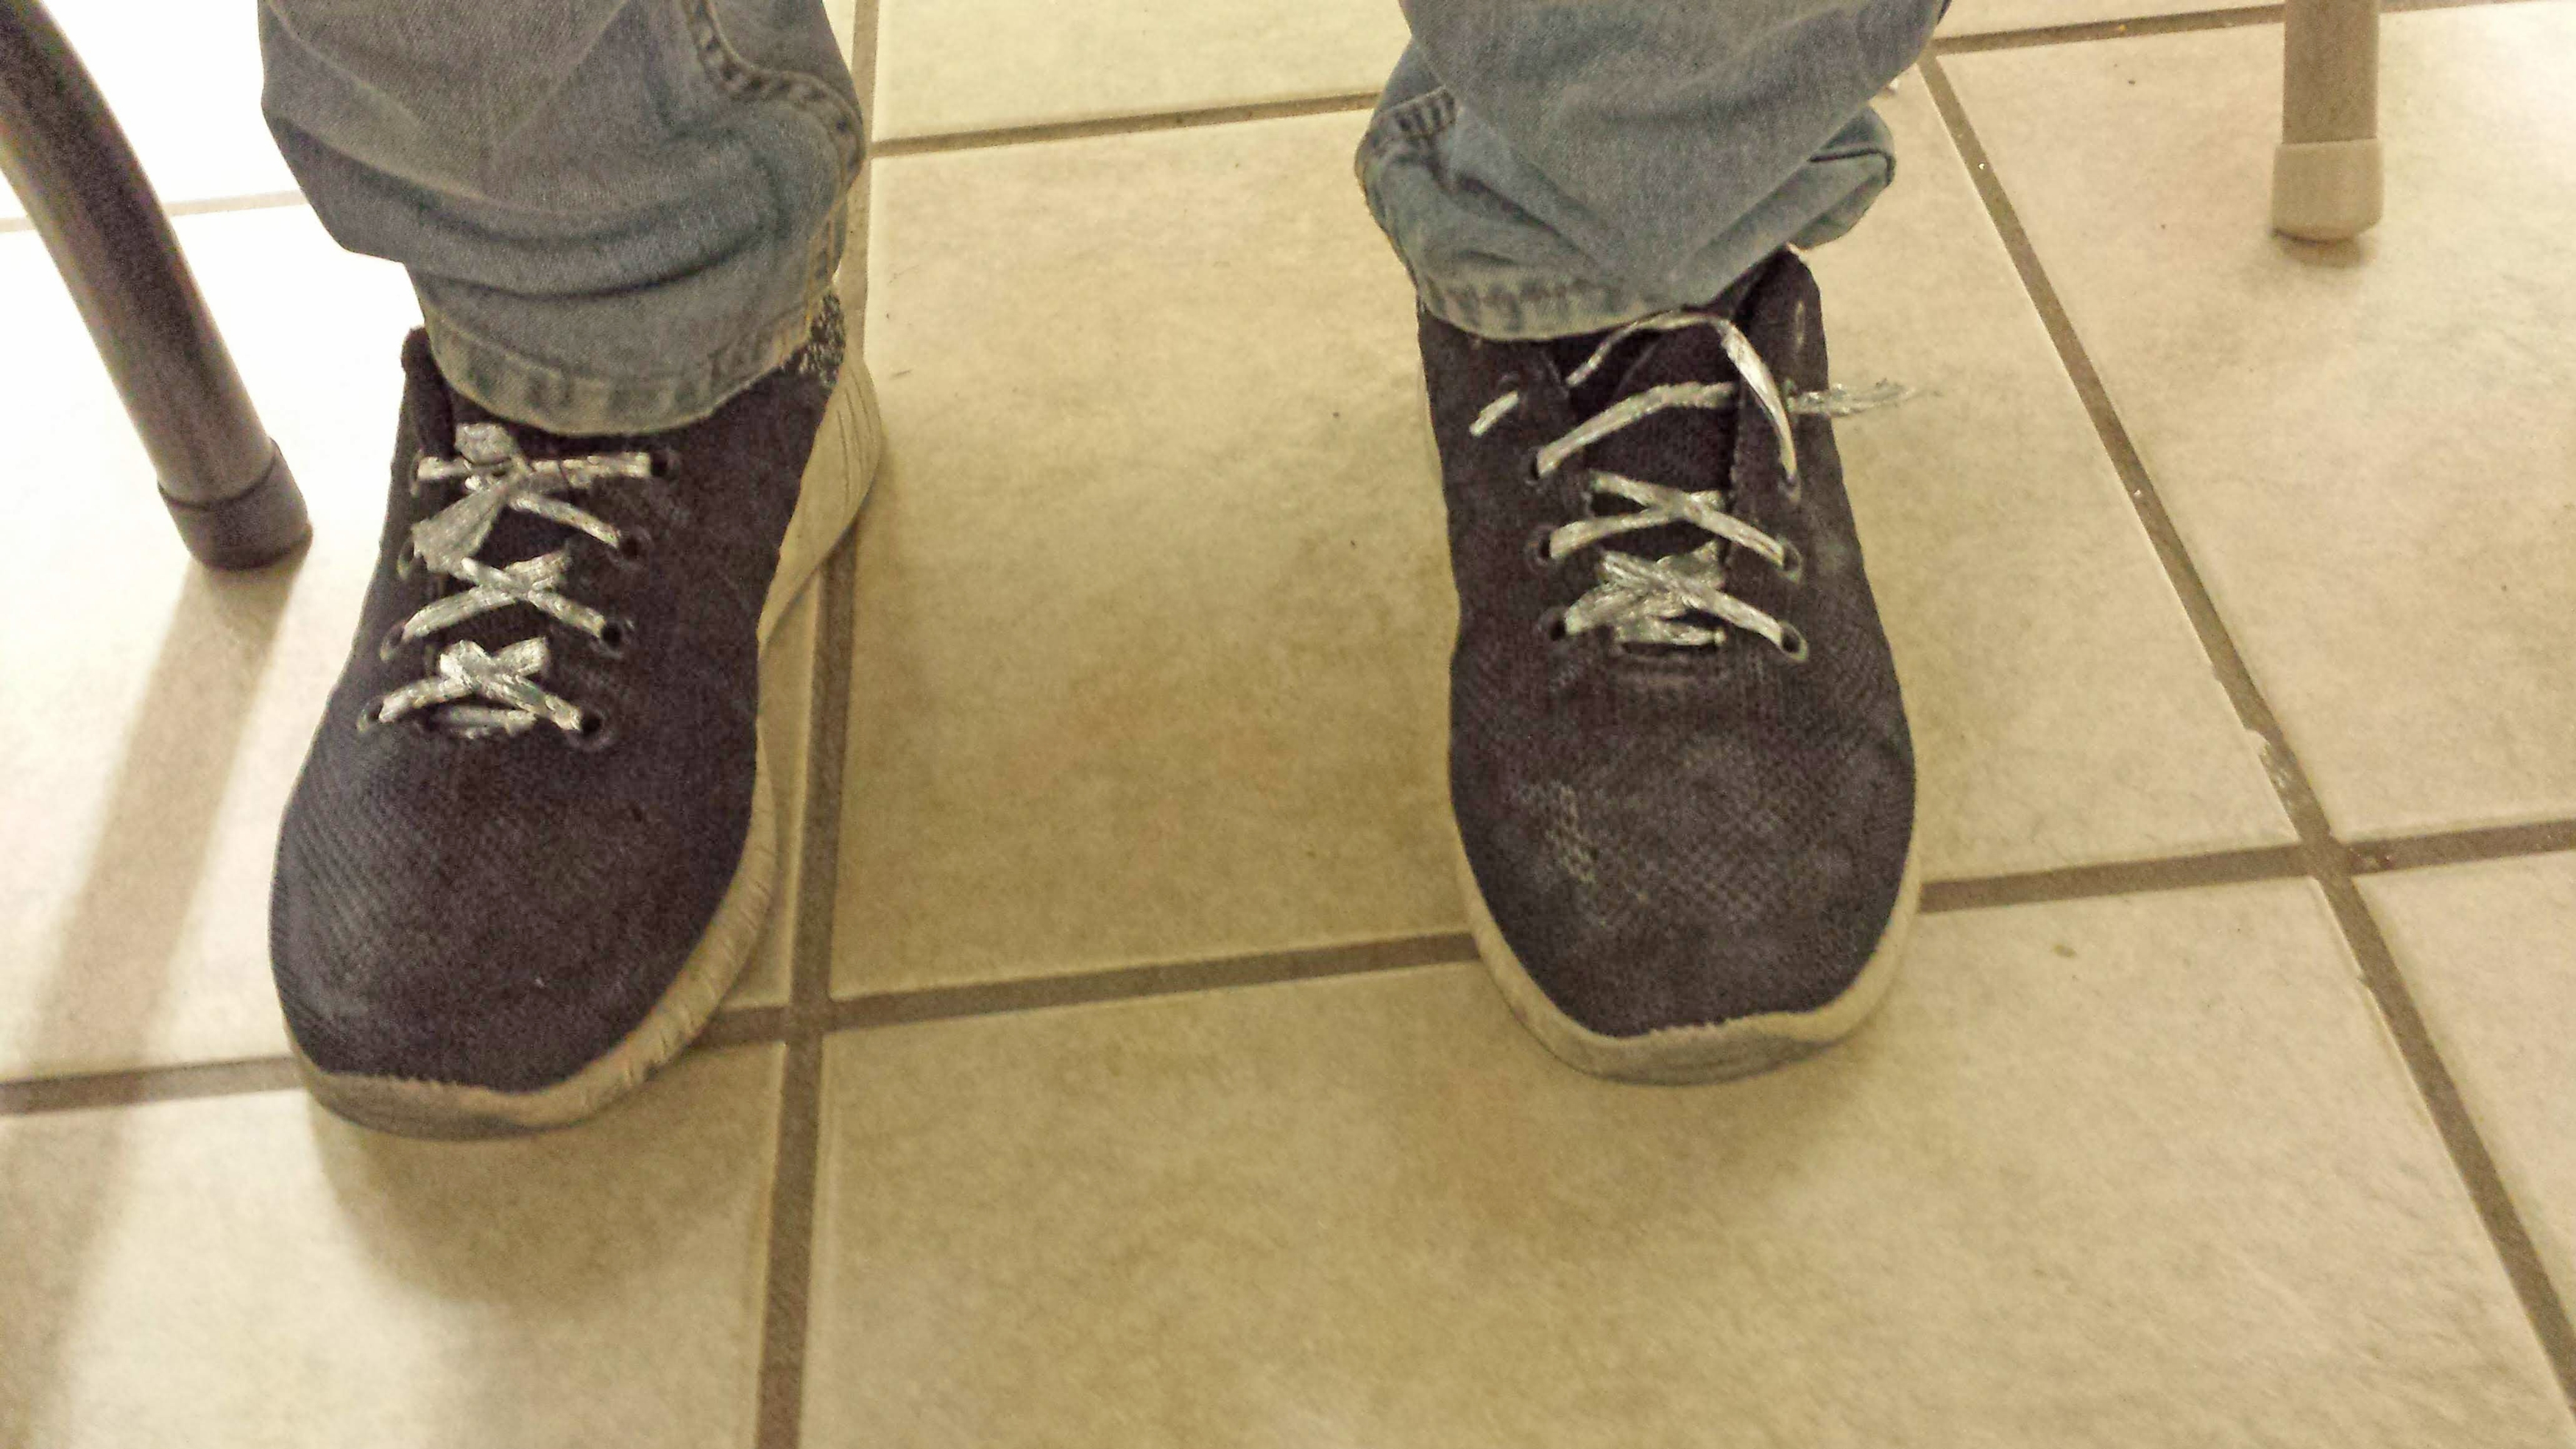 a pair of post detention and pre-new shoelaces